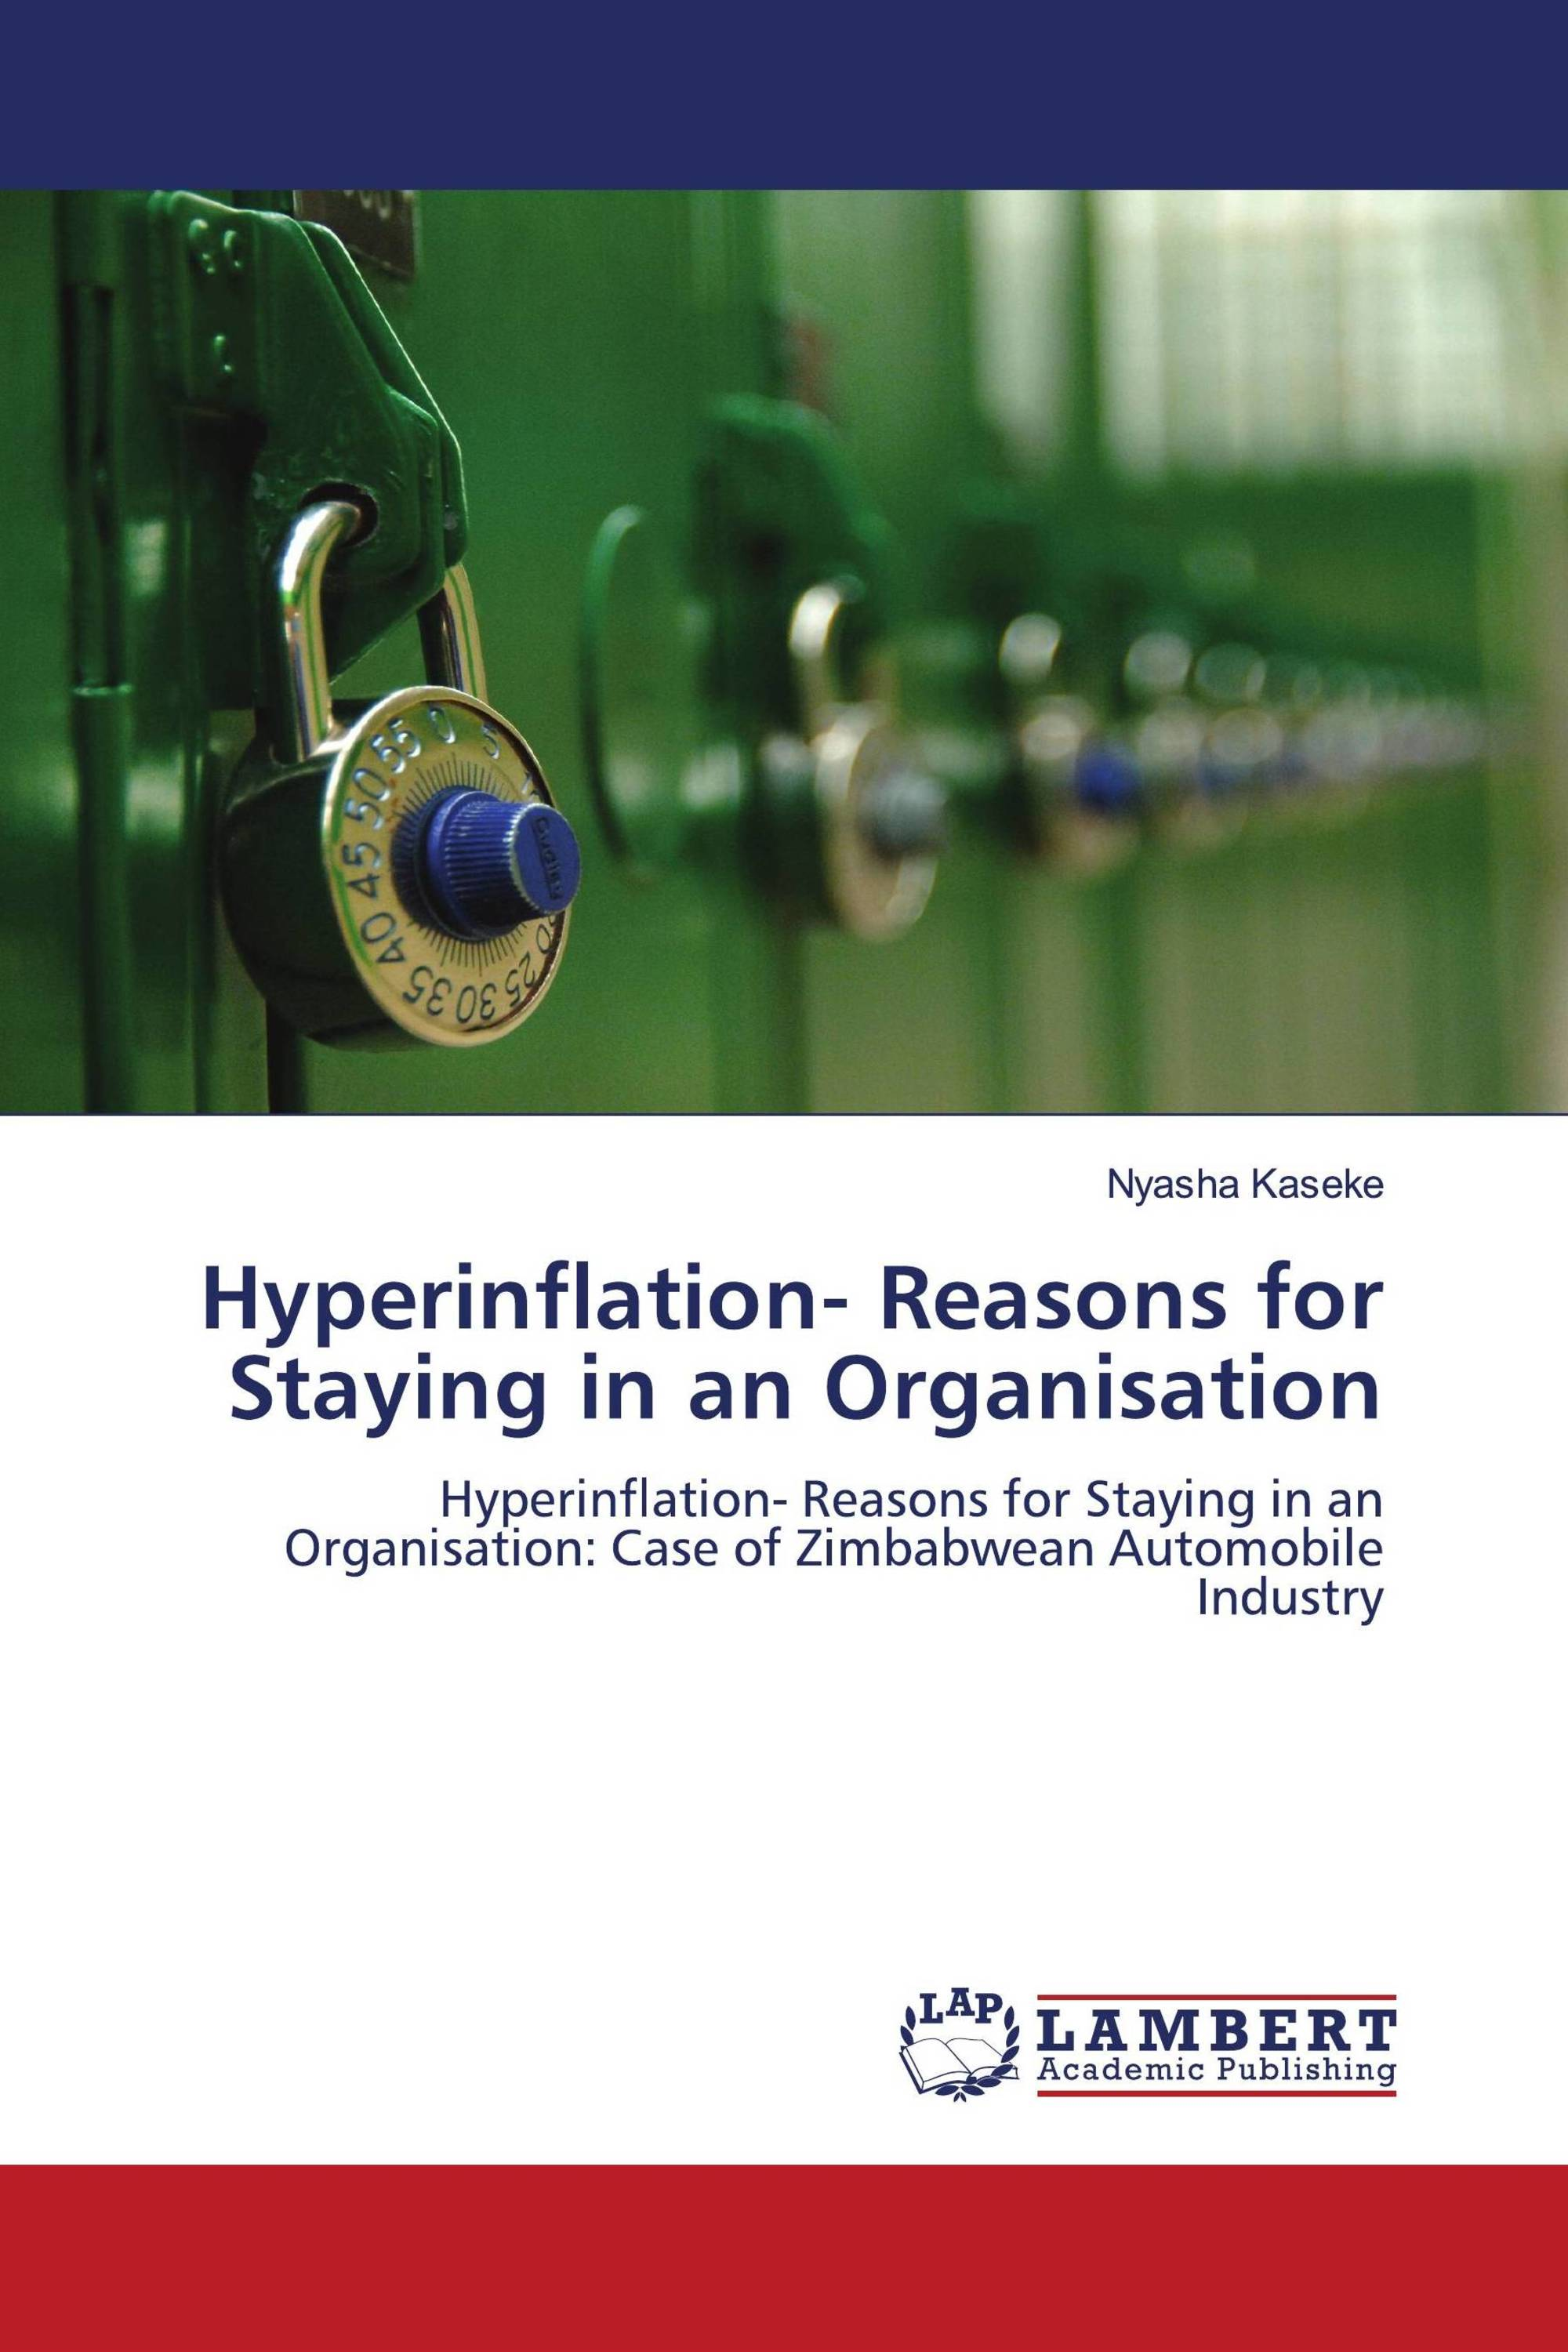 an analysis of the issues on hyper inflation